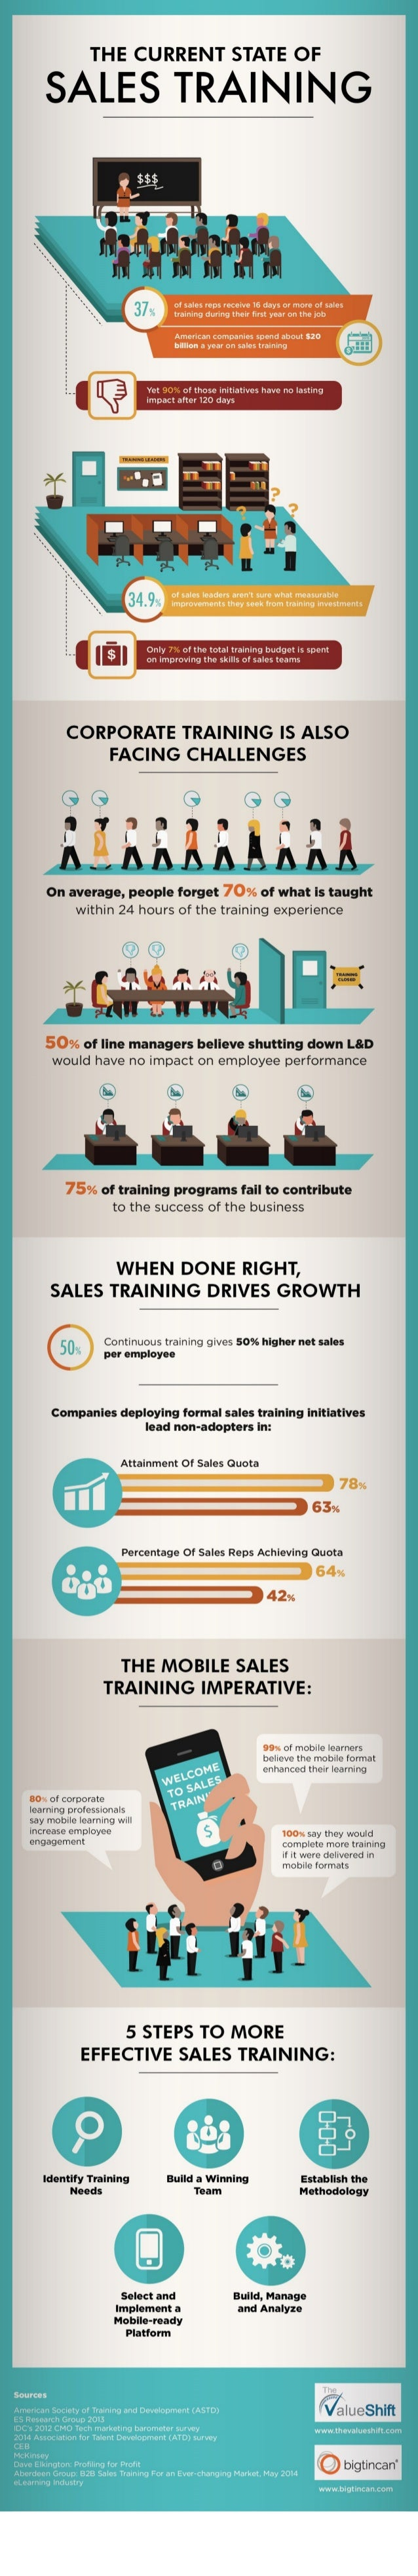 THE CURRENT STATE OF  SALES TRAINING  of sales reps receive 16 days or more of sales training during their first year on t...